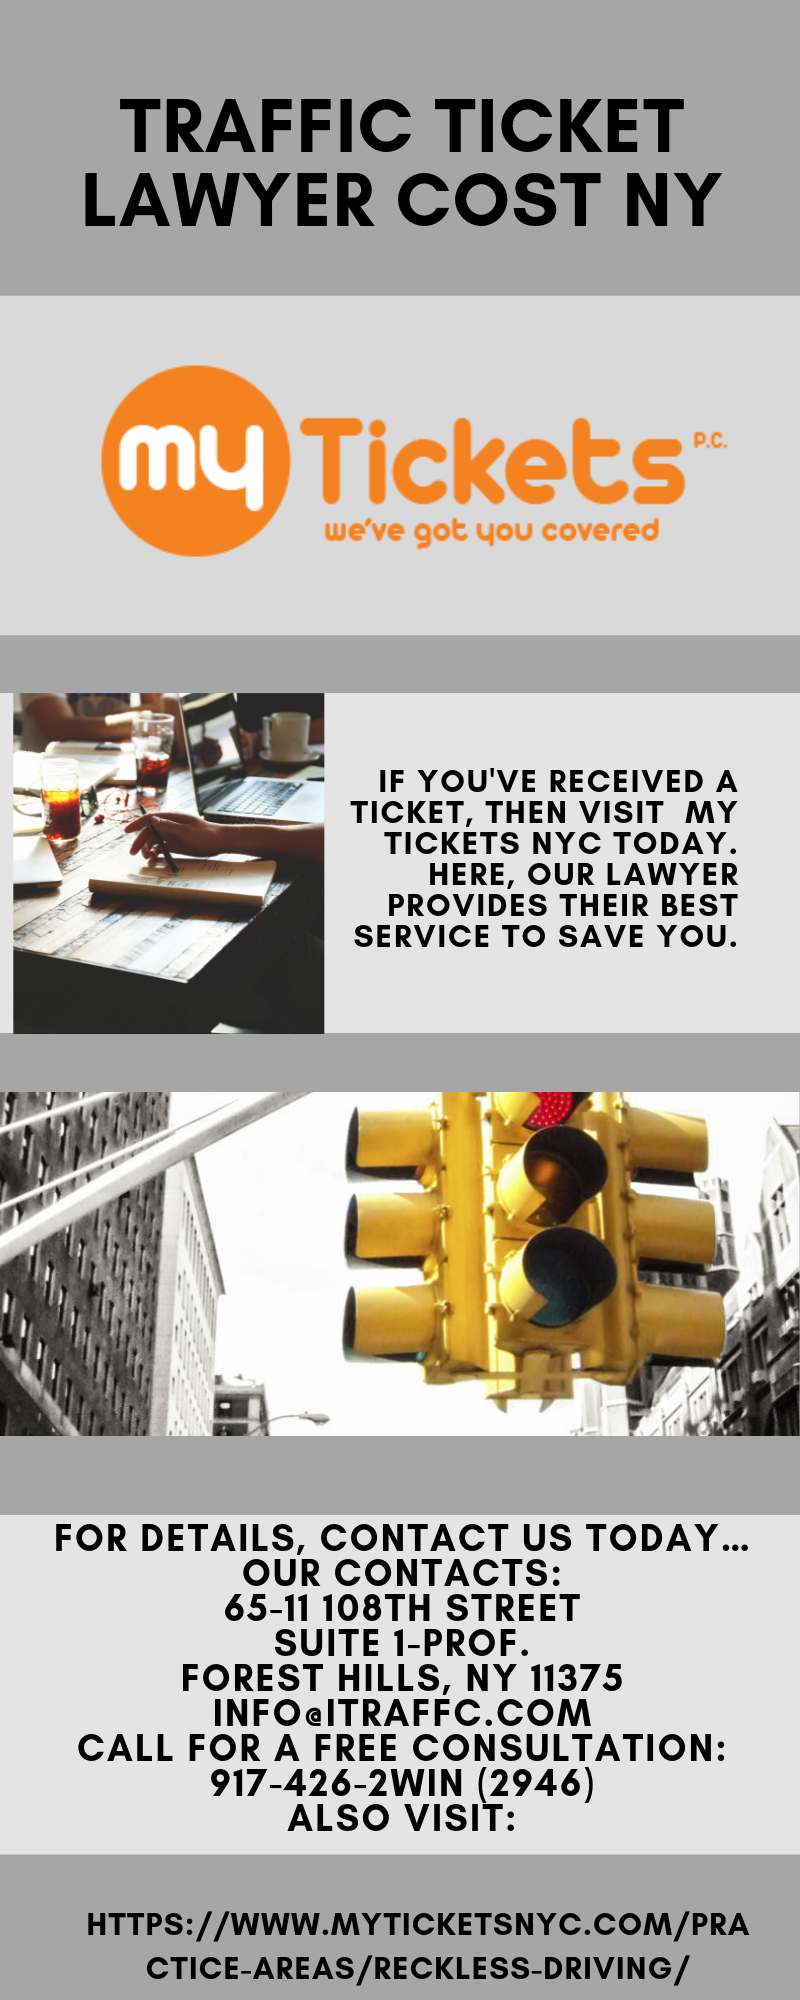 Traffic Ticket Nyc >> Pin By Myticketsnyc On Traffic Ticket Lawyer Cost Ny